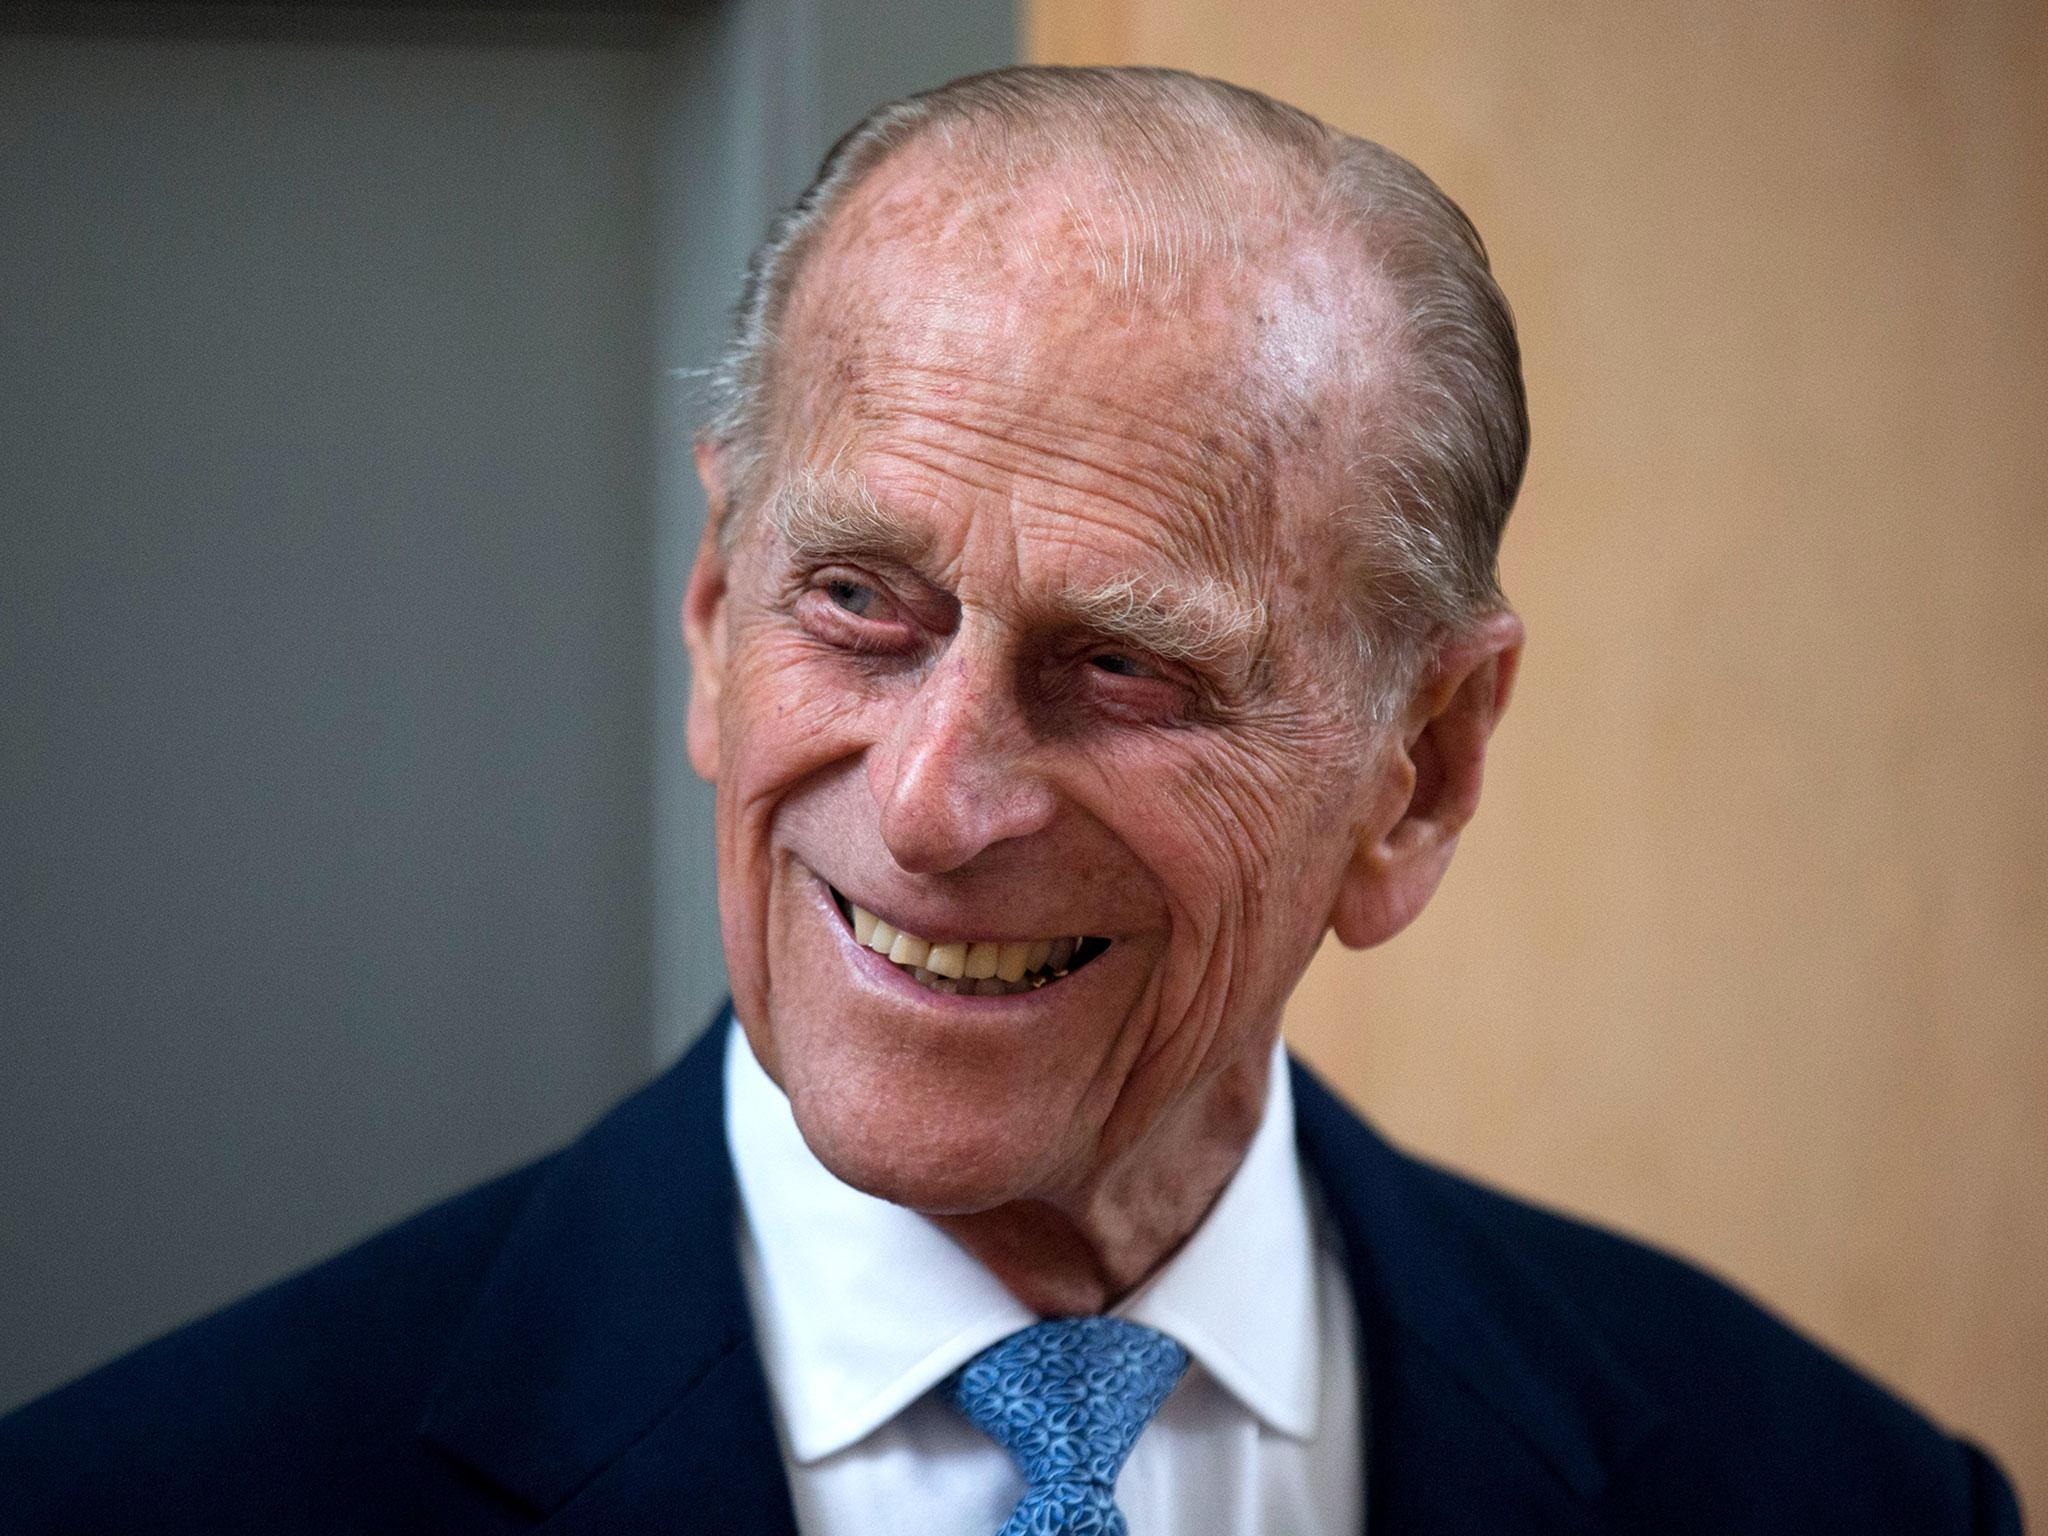 Prince Philip Quotes Prince Philip's Honesty May Be Politically Incorrect But It Was